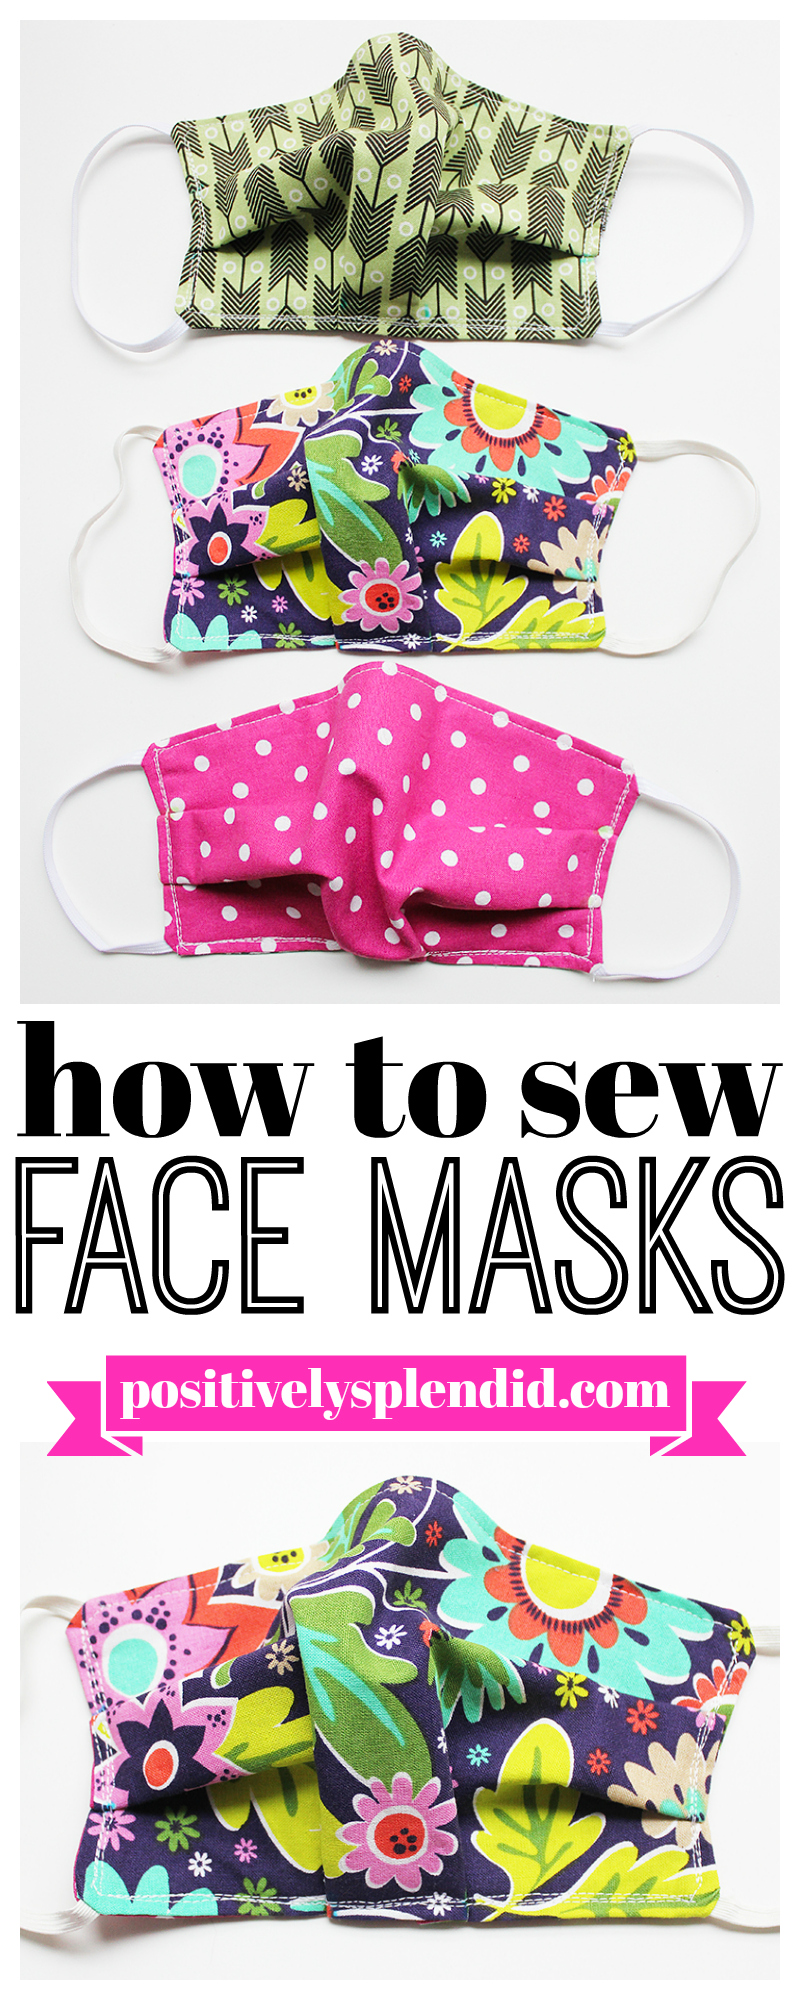 How to Sew Cloth Face Masks